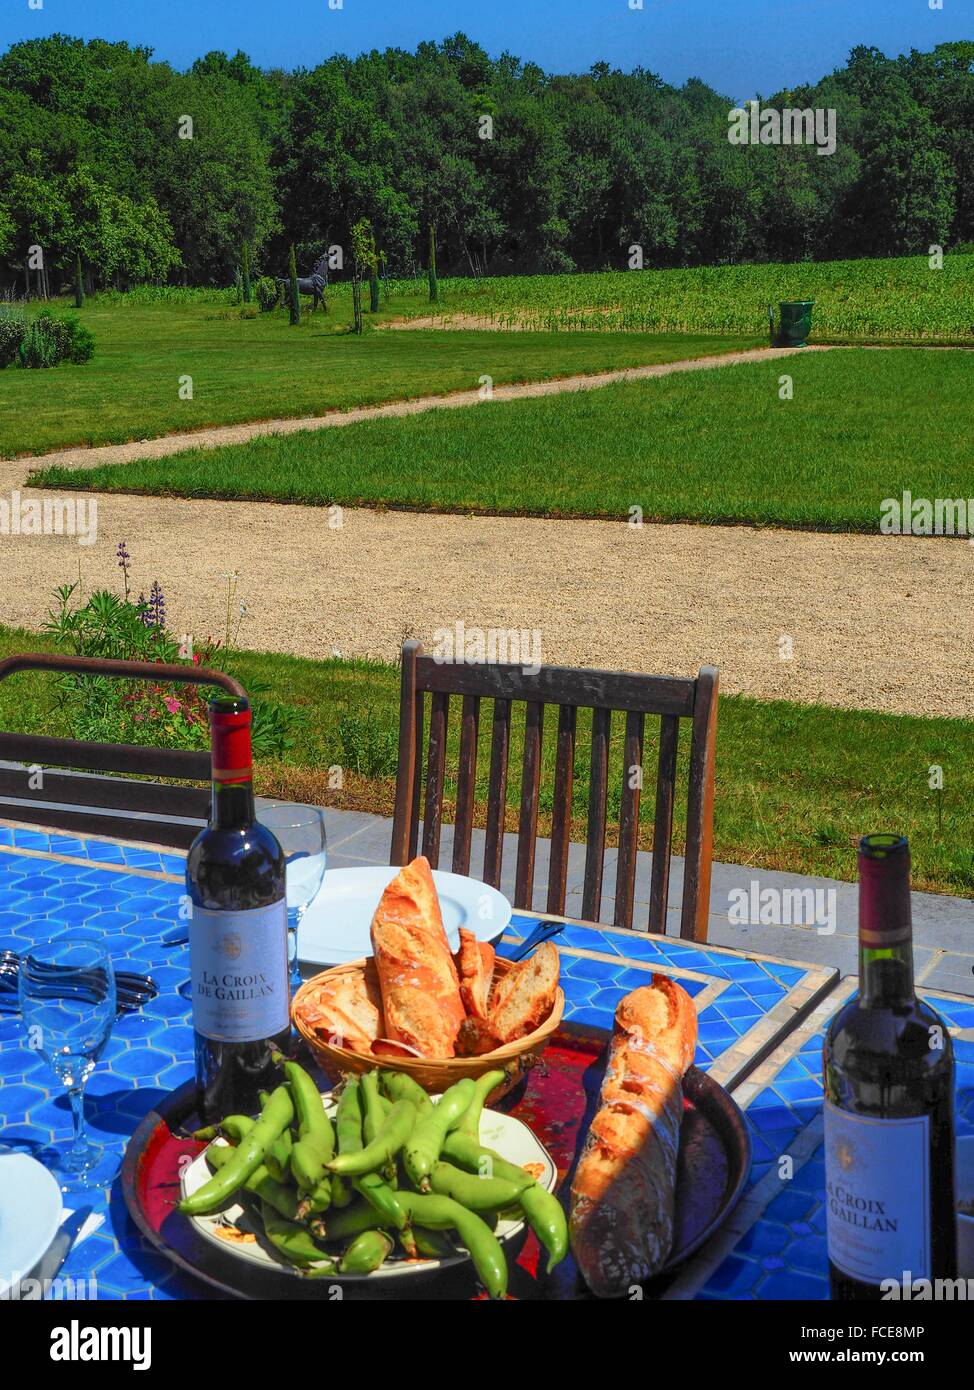 Lunch at Les Cultures de Puygareau charming guestouse, Sossay, Vienne, Poitou-Charentes, France - Stock Image